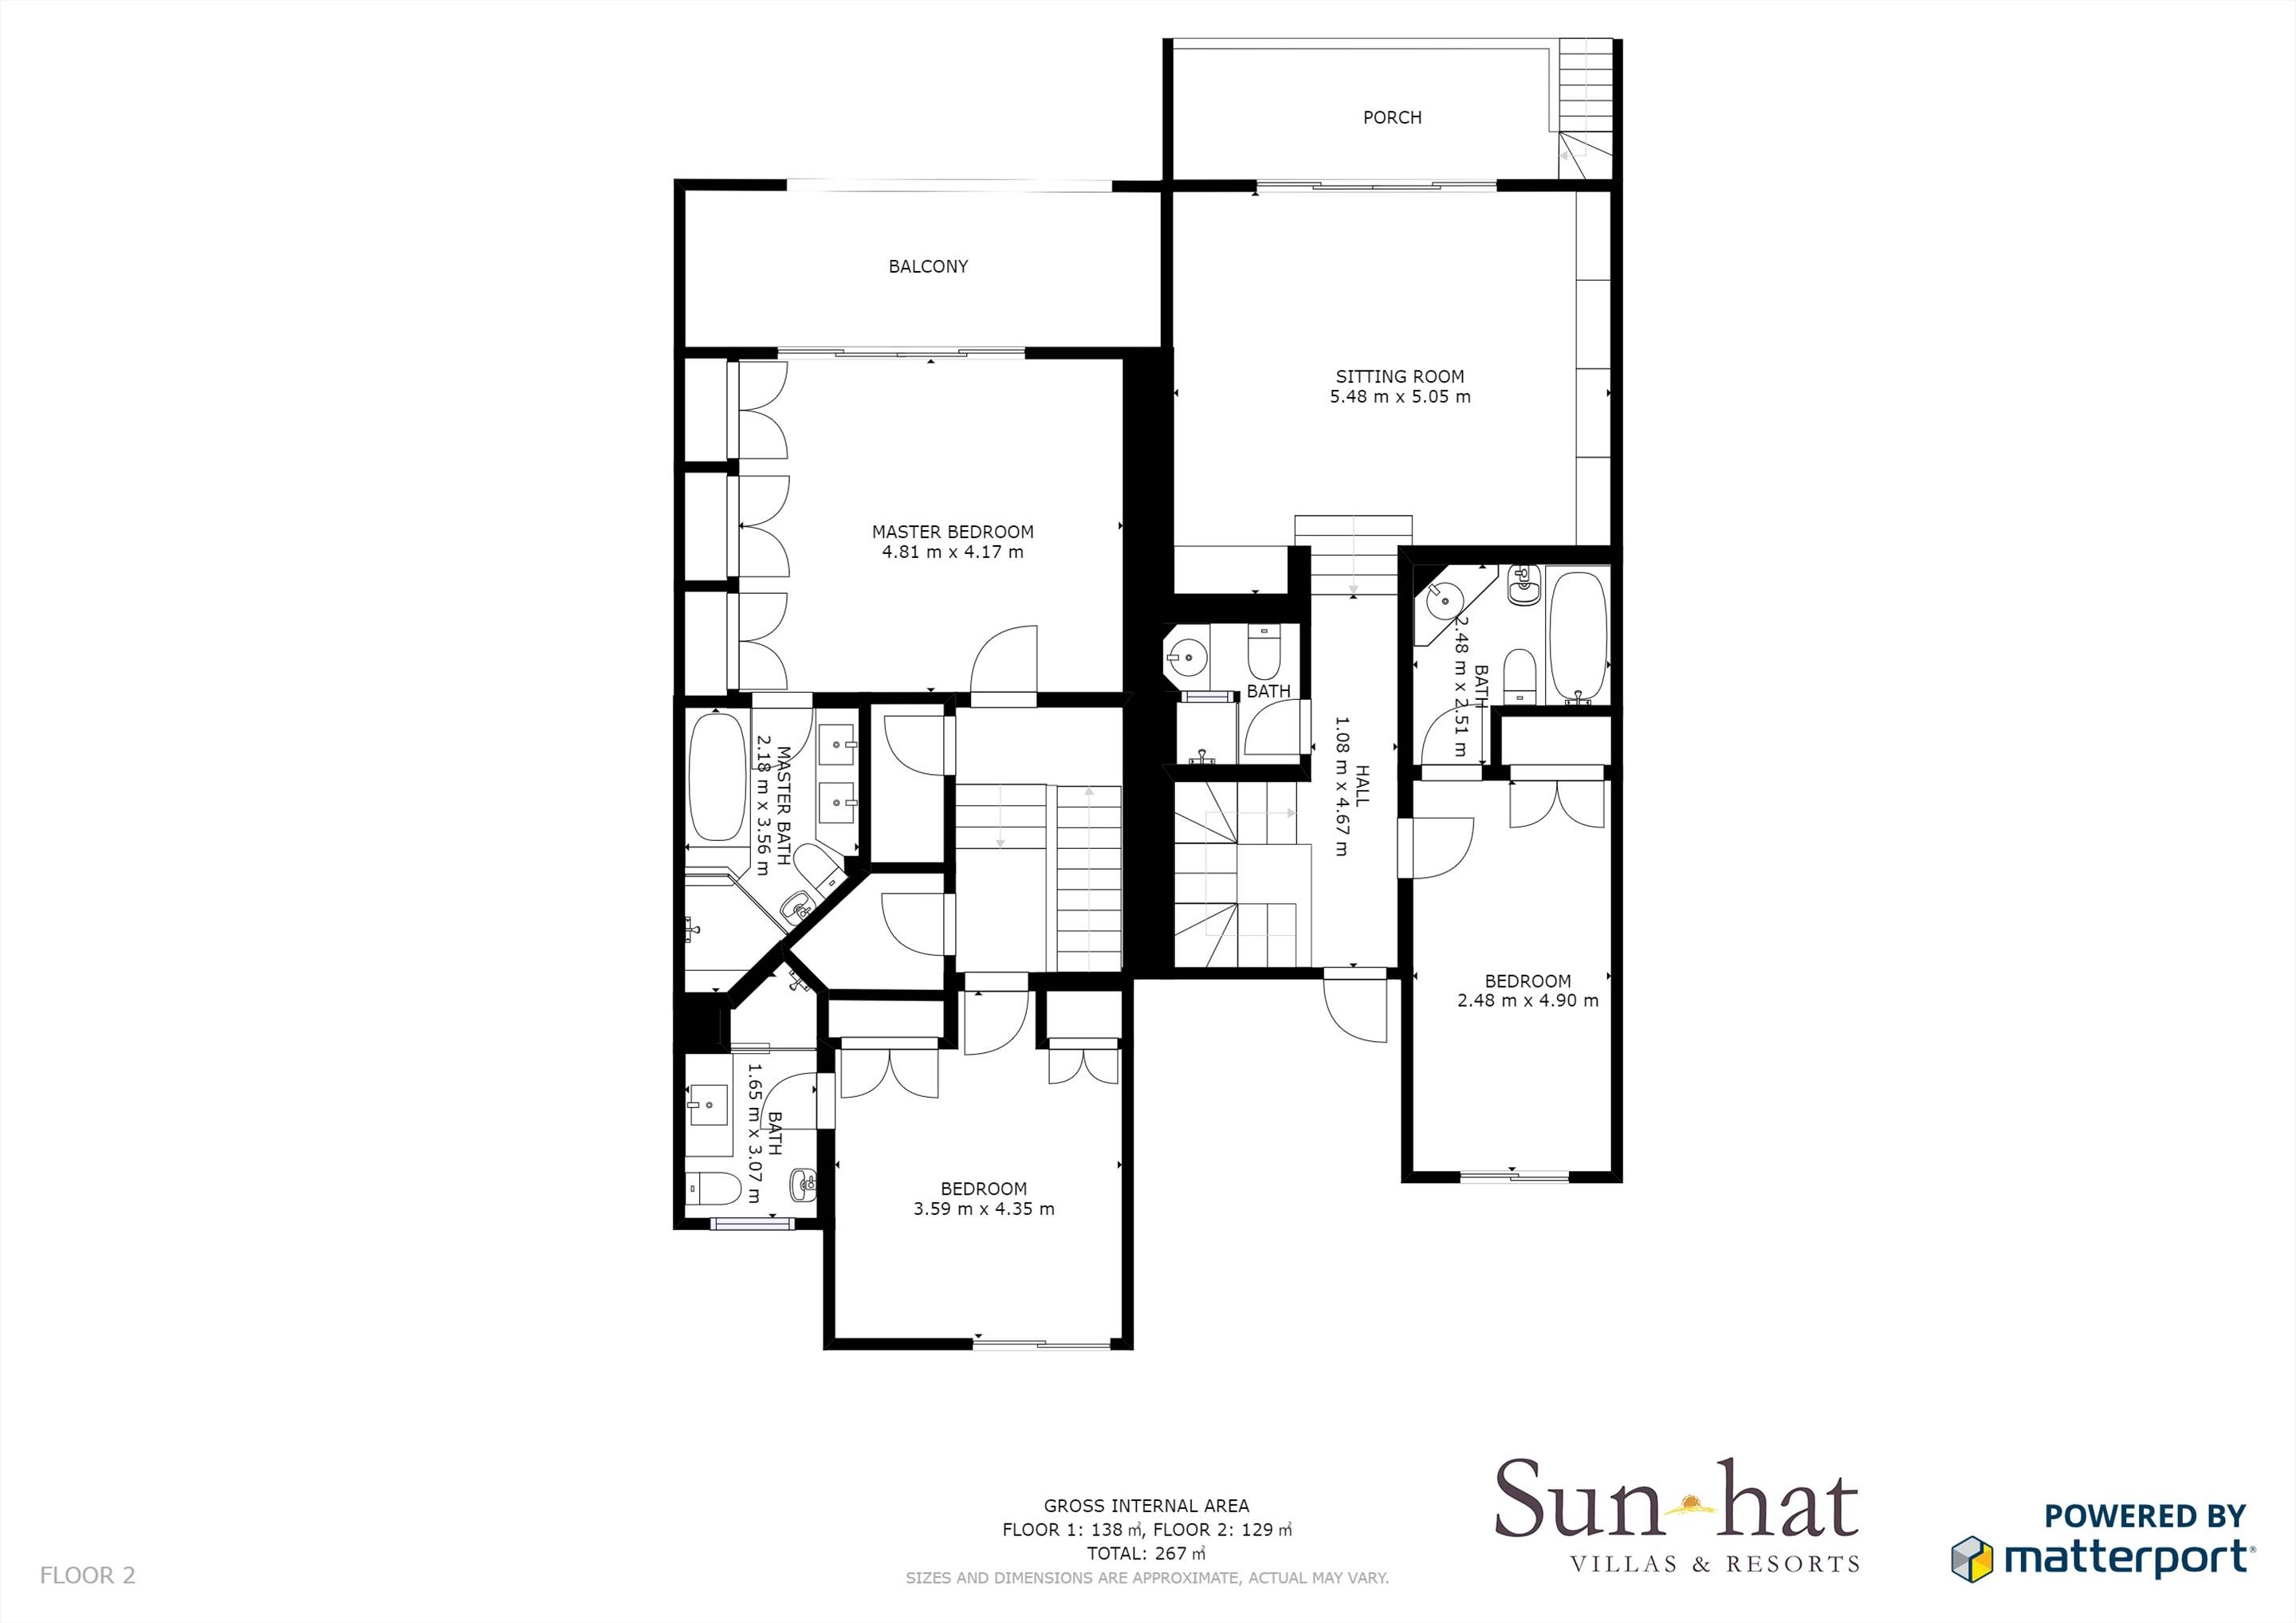 Villas Louisa, 3 bedroom Floorplan #2